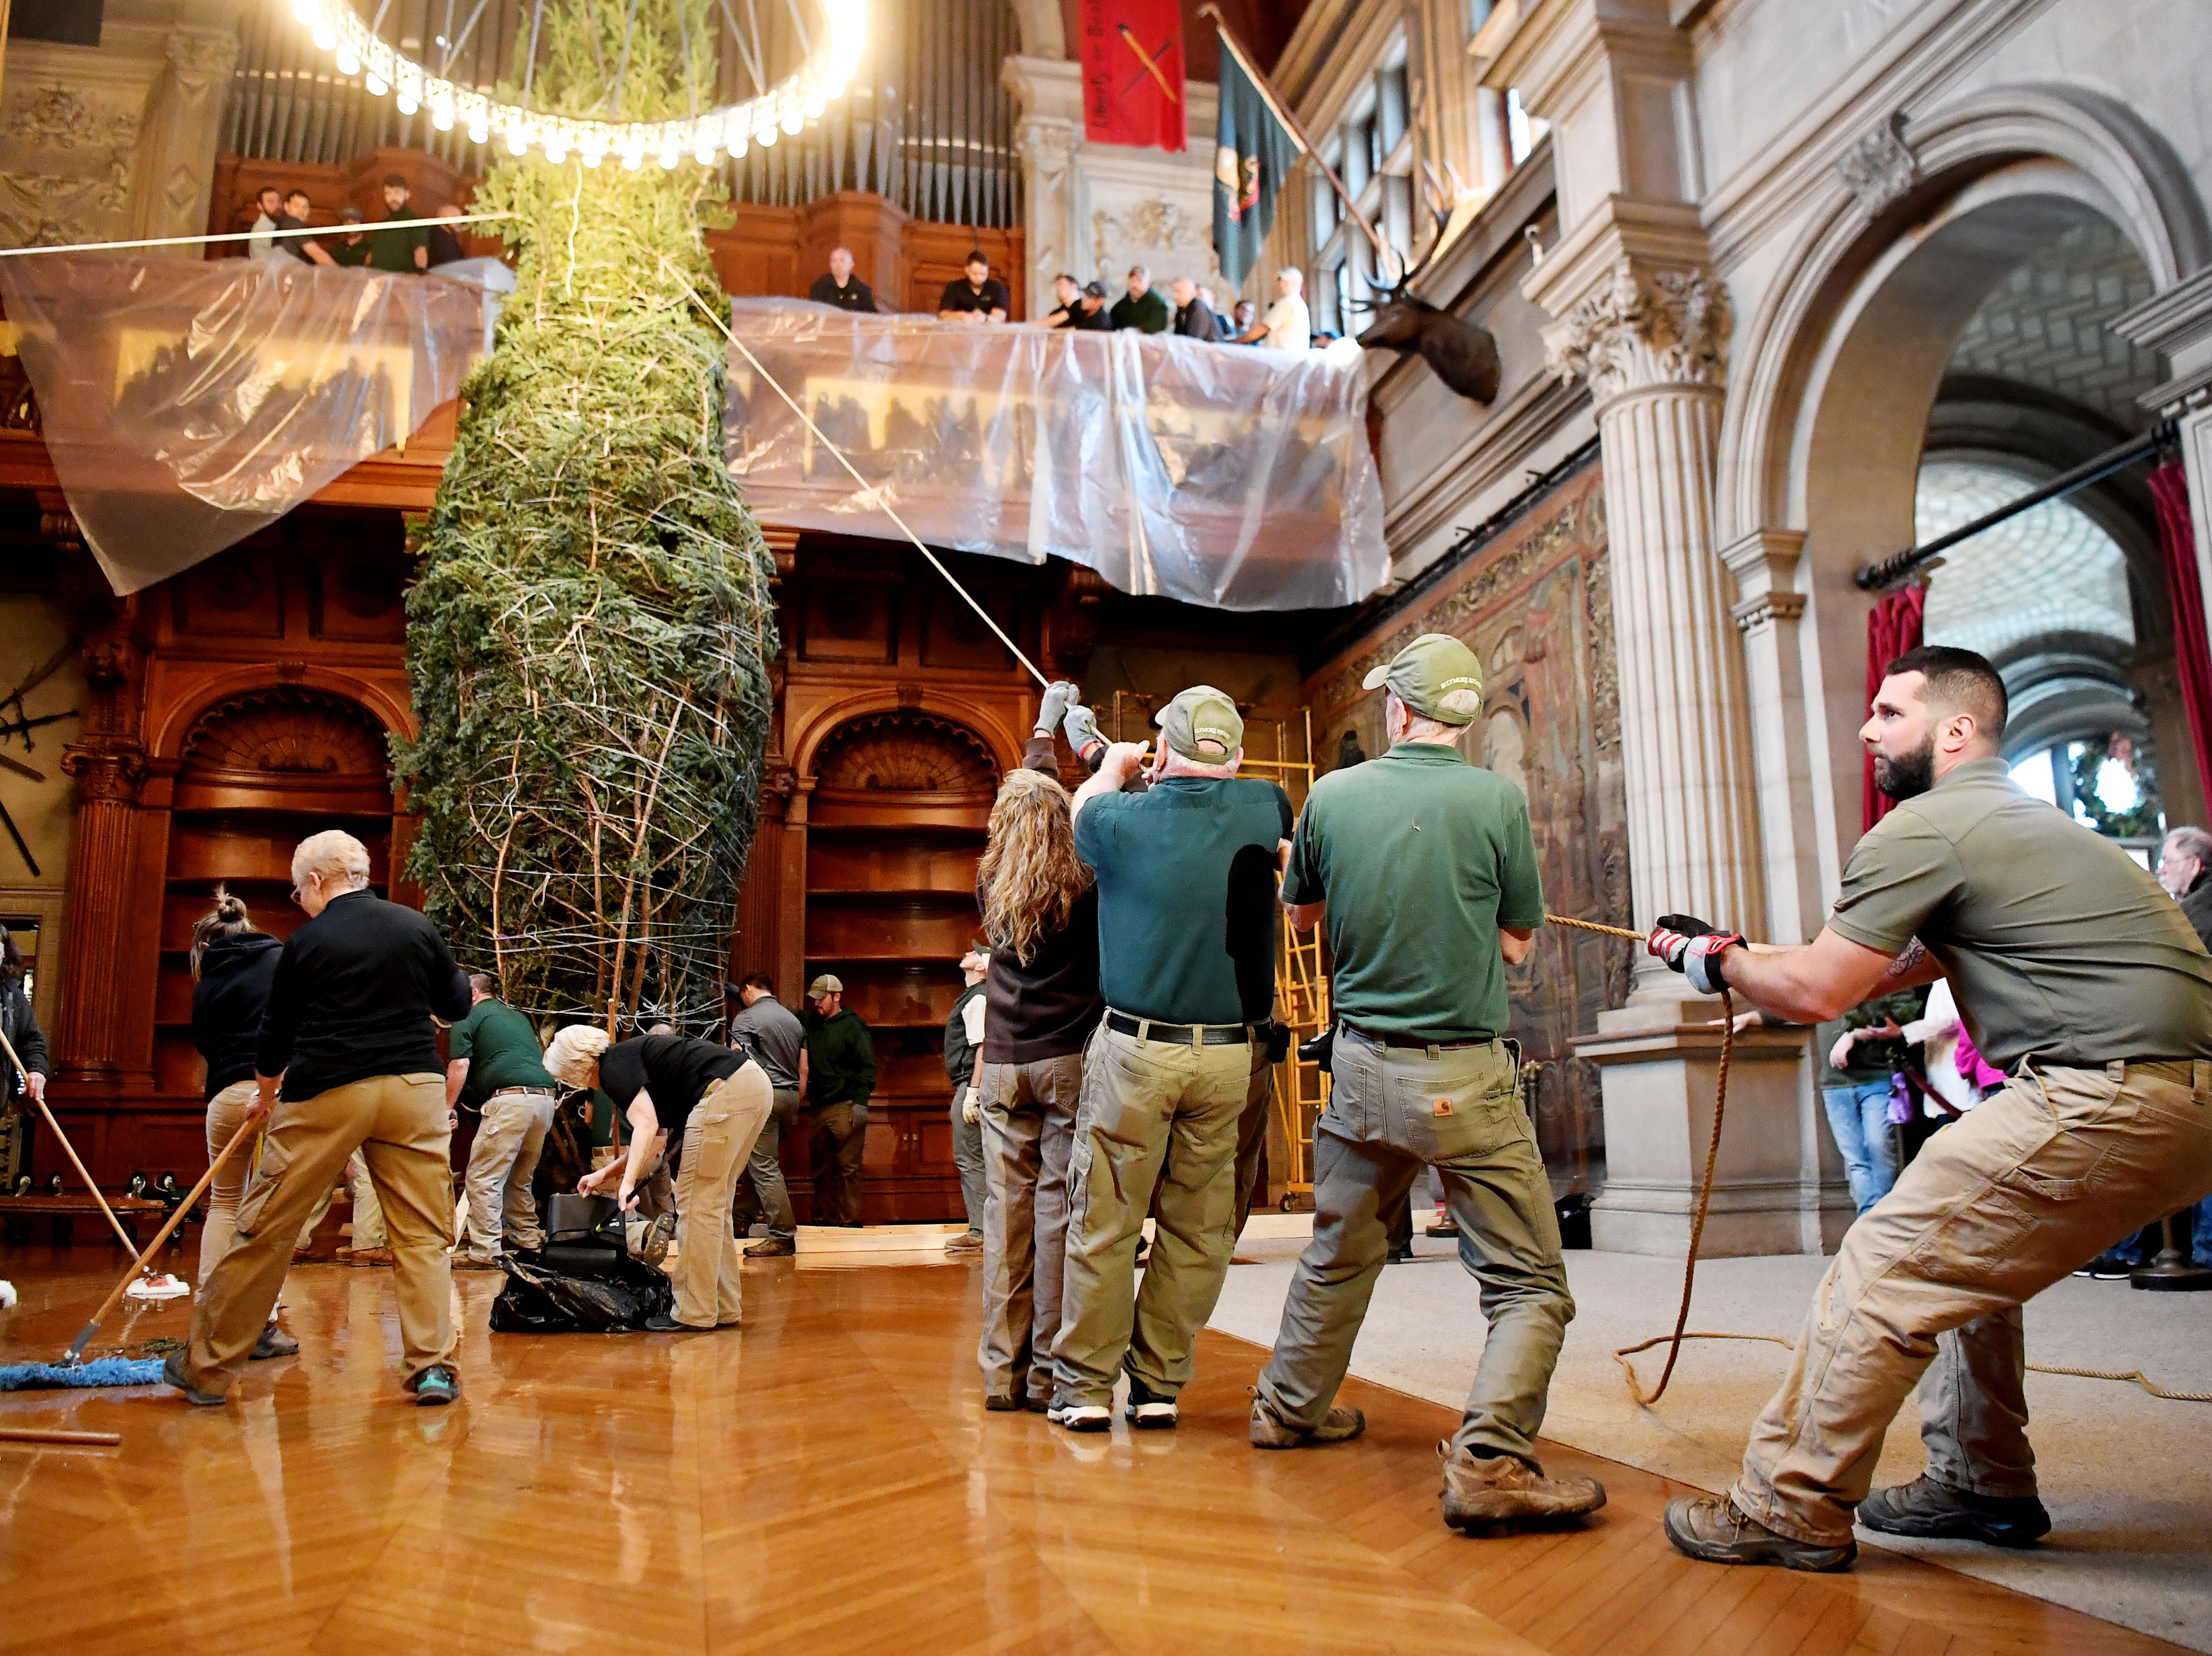 A team of about 50 employees from various departments raised the Biltmore's banquet hall Fraser fir Christmas tree Nov. 1, 2018.